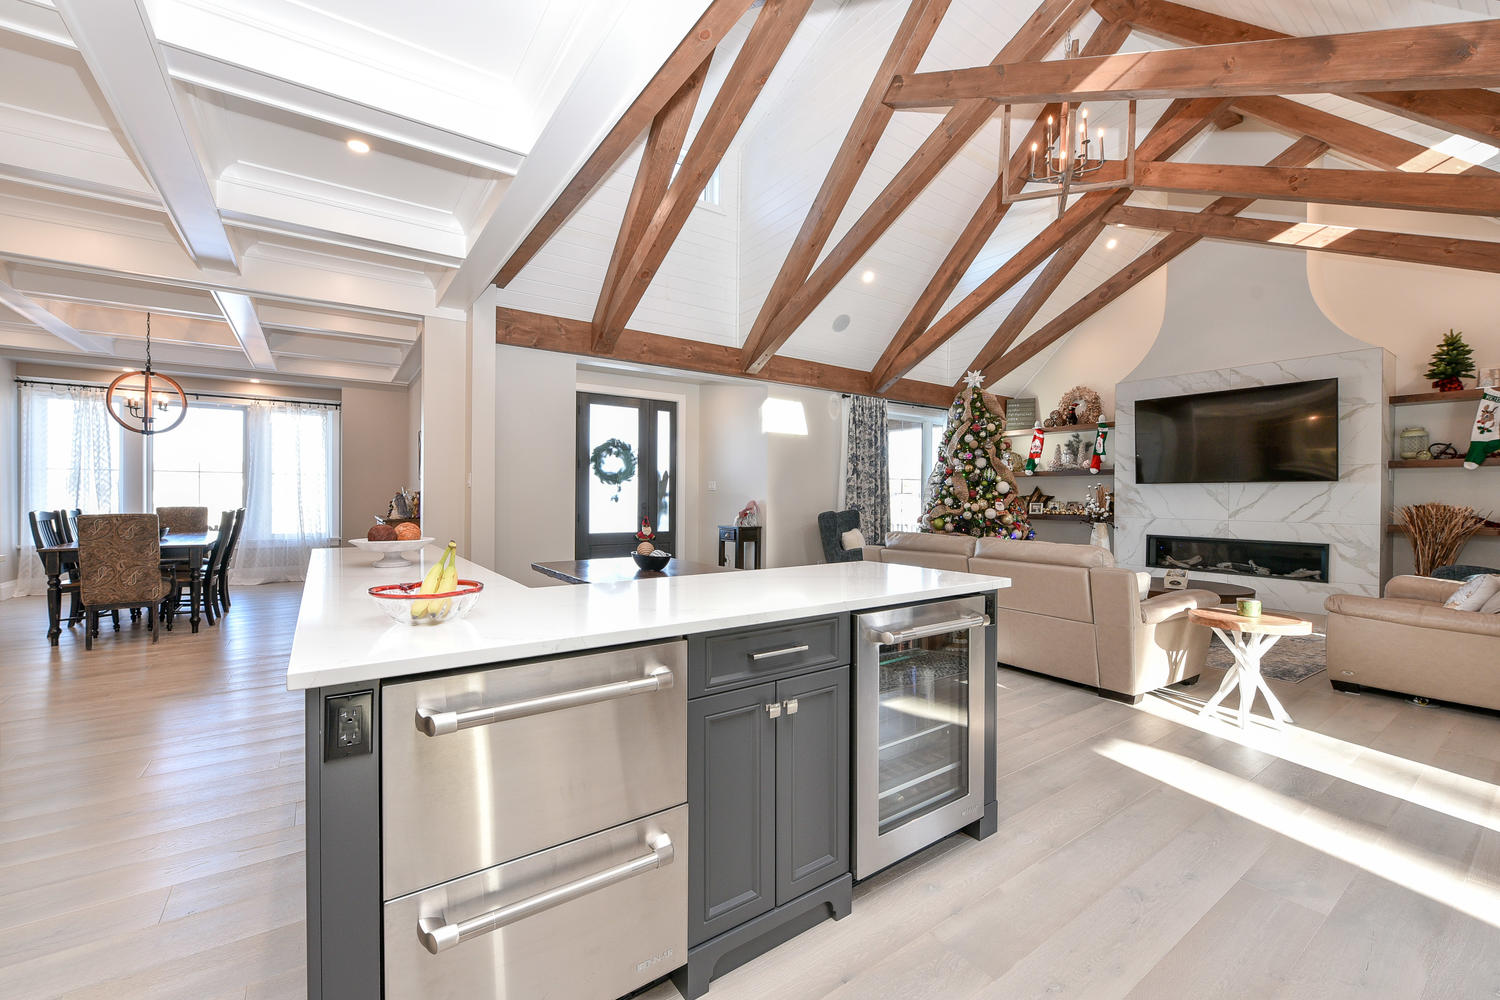 Kitchen - Eclectic Country Project In Renfrew